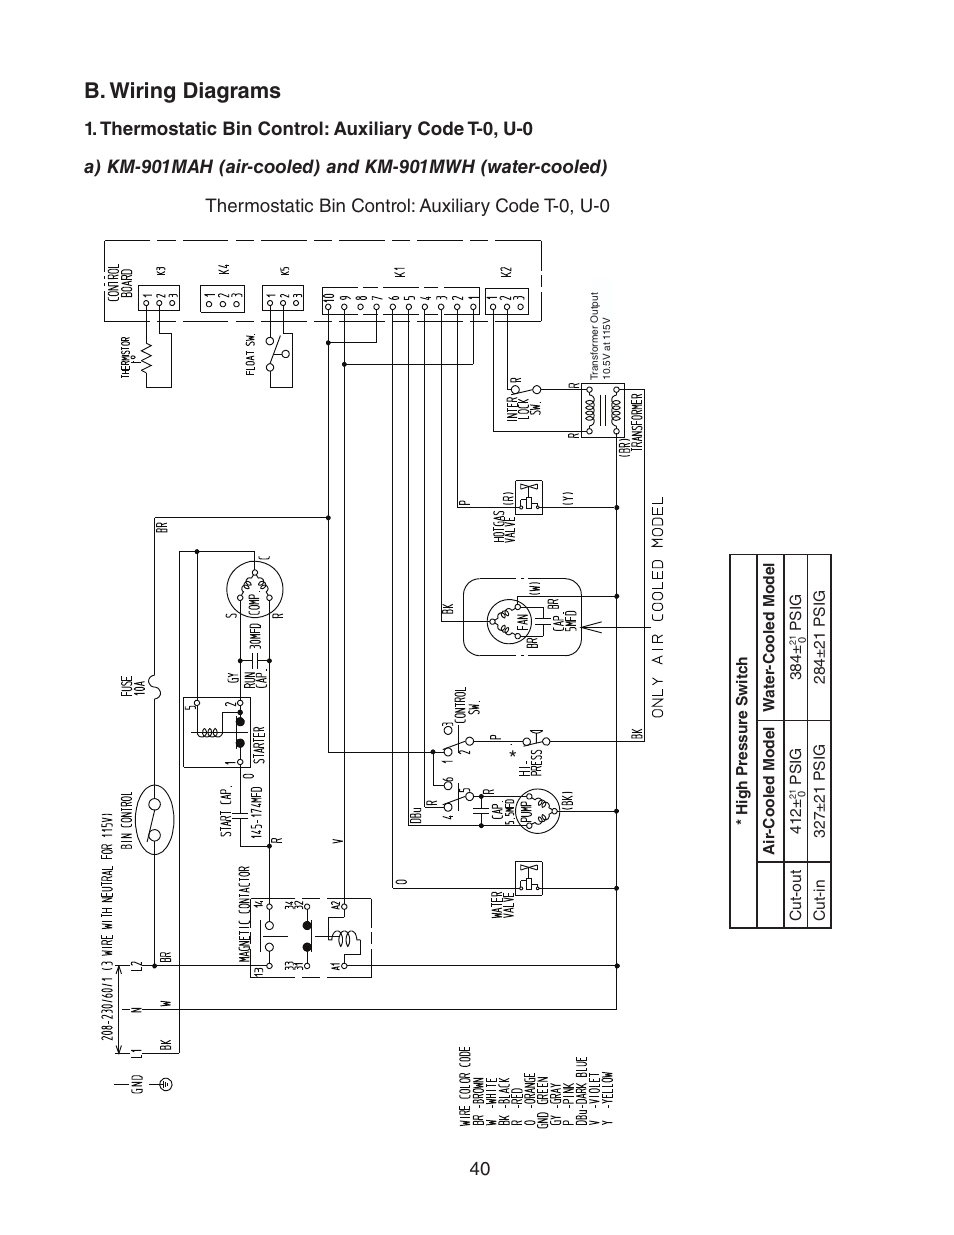 B Wiring Diagrams Thermostatic Bin Control Auxiliary Code T 0 U Model Diagram Hoshizaki Km 901mwh User Manual Page 40 87